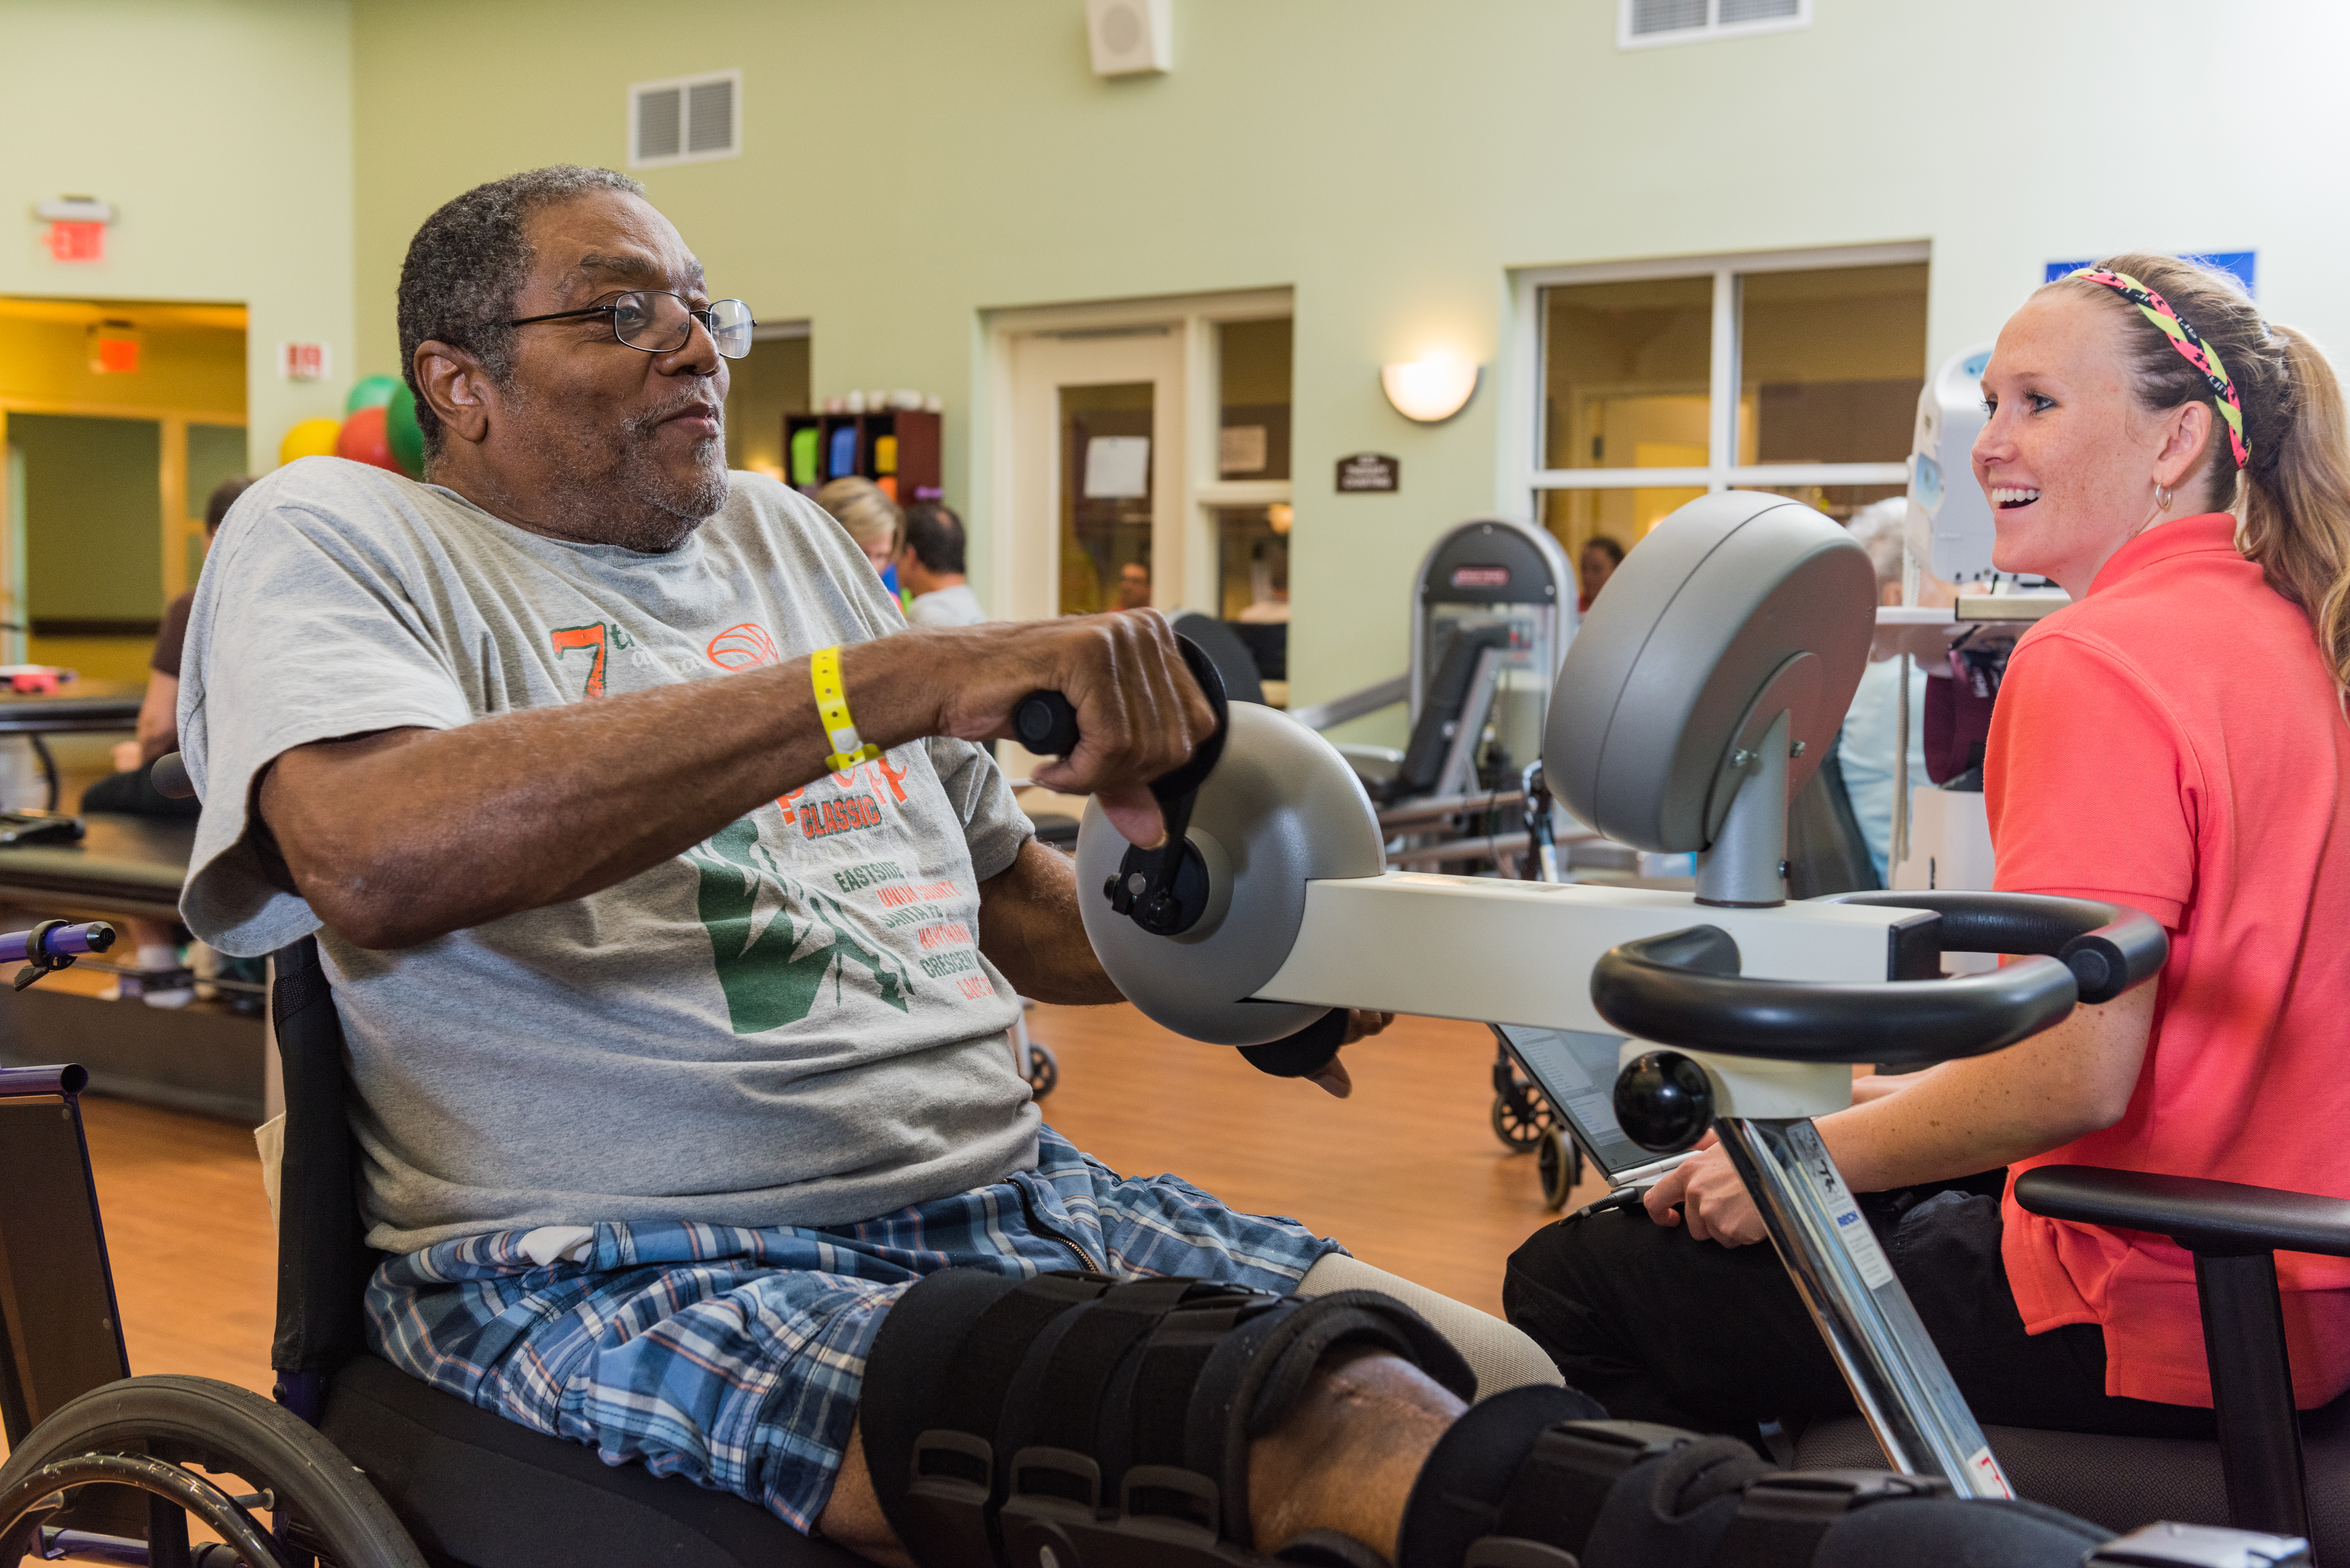 therapy in a skilled nursing facility